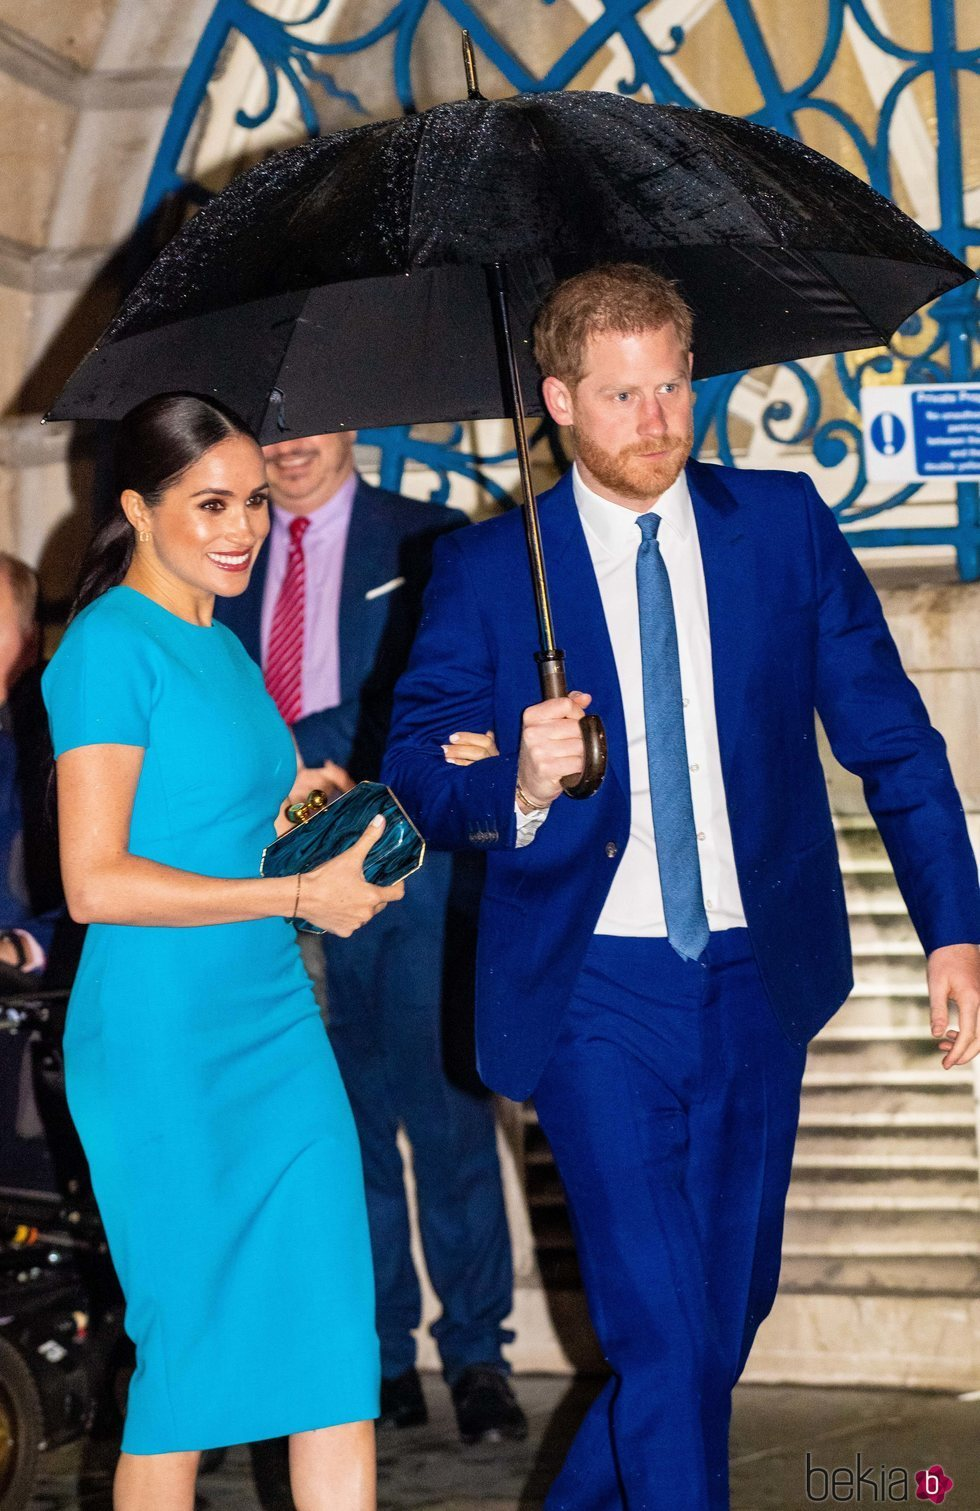 El Príncipe Harry y Meghan Markle en los Endeavour Fund Awards 2020